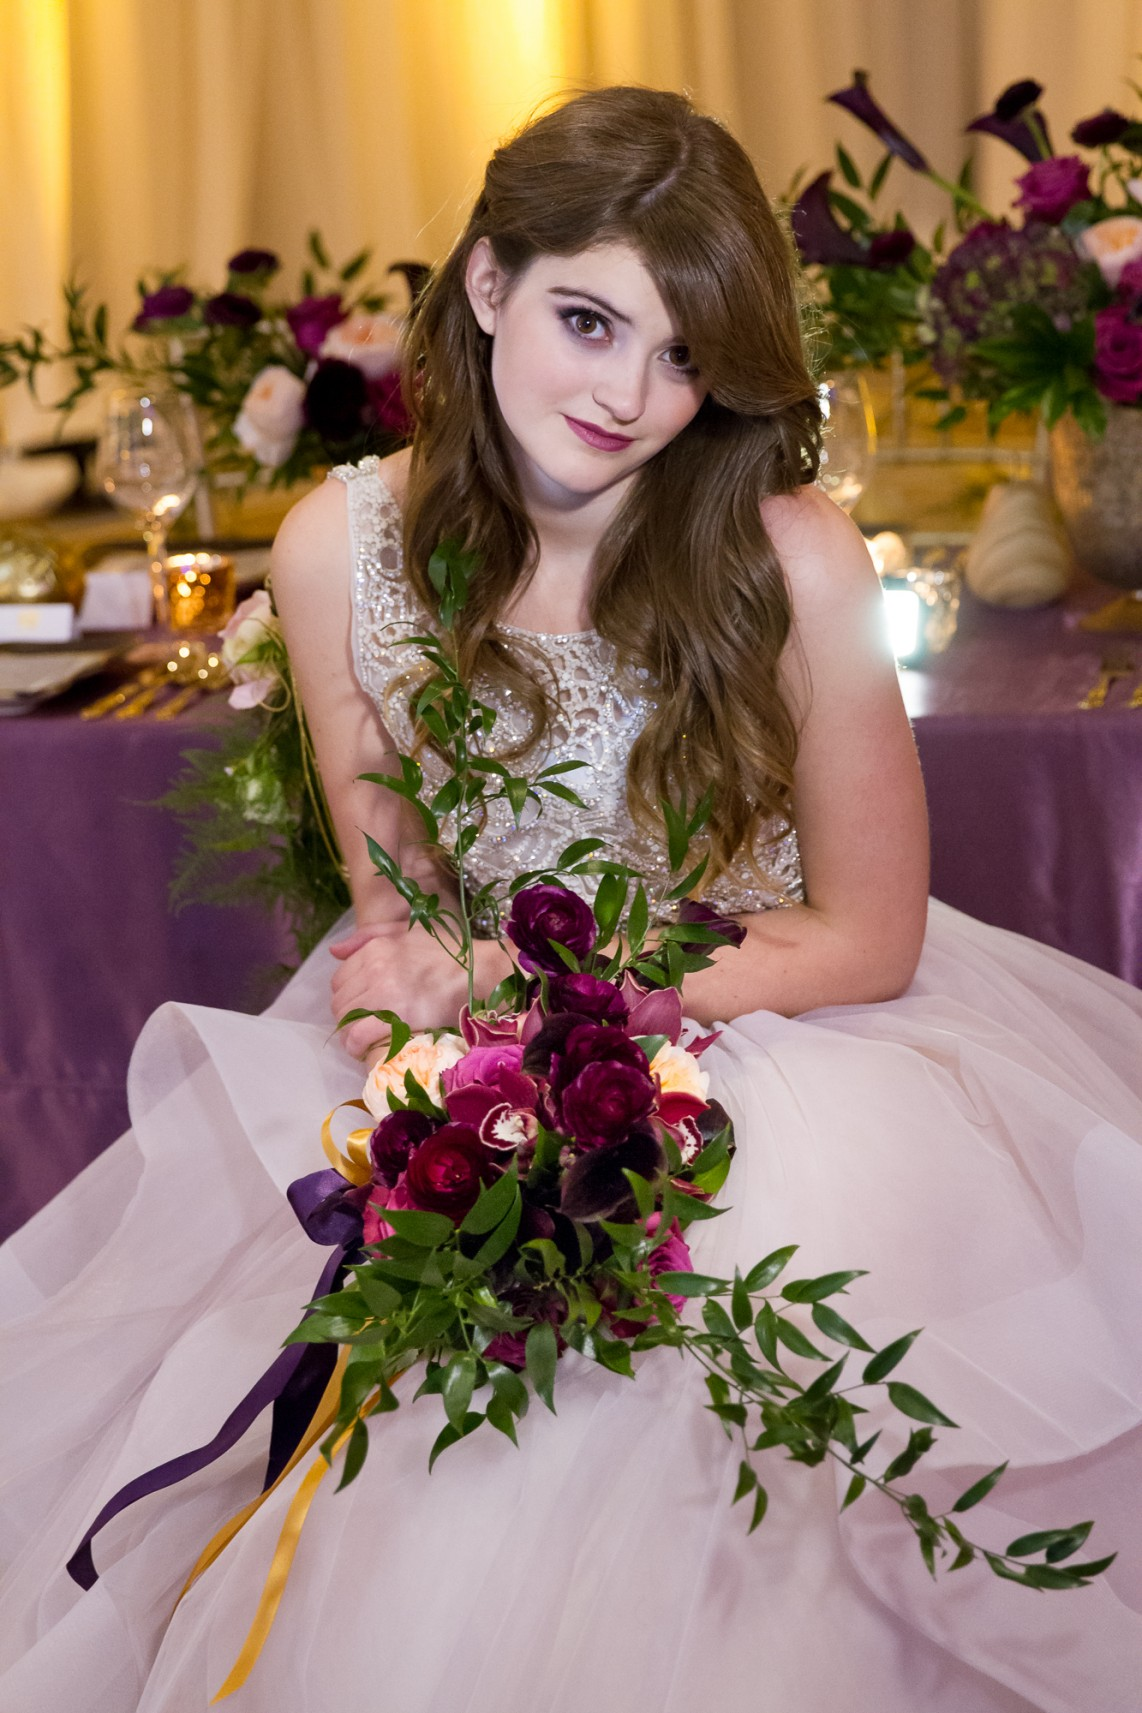 winnepeg-wedding-5-12212014-ky